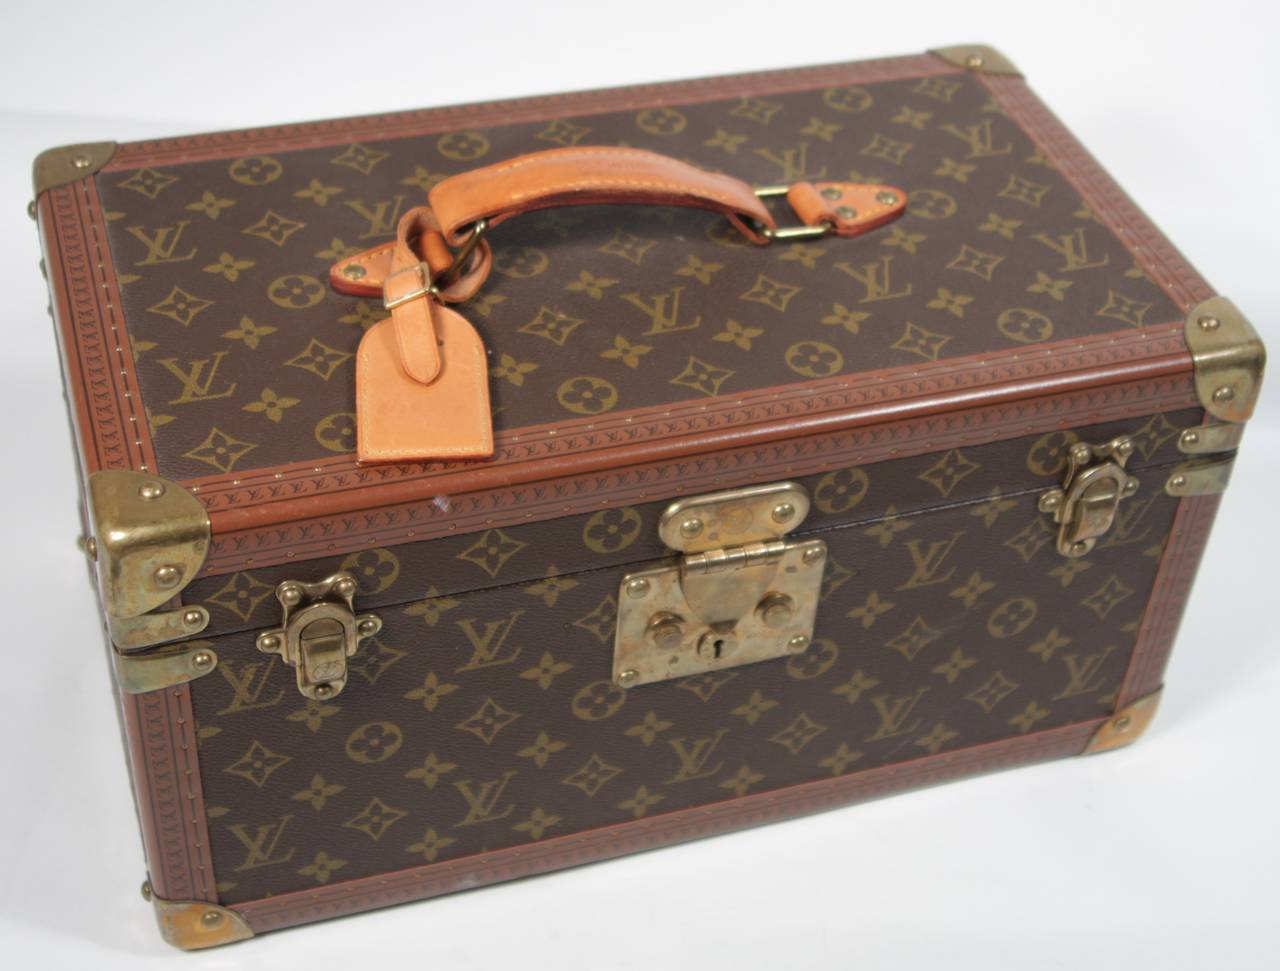 louis vuitton vintage monogram cosmetic travel train case at 1stdibs. Black Bedroom Furniture Sets. Home Design Ideas